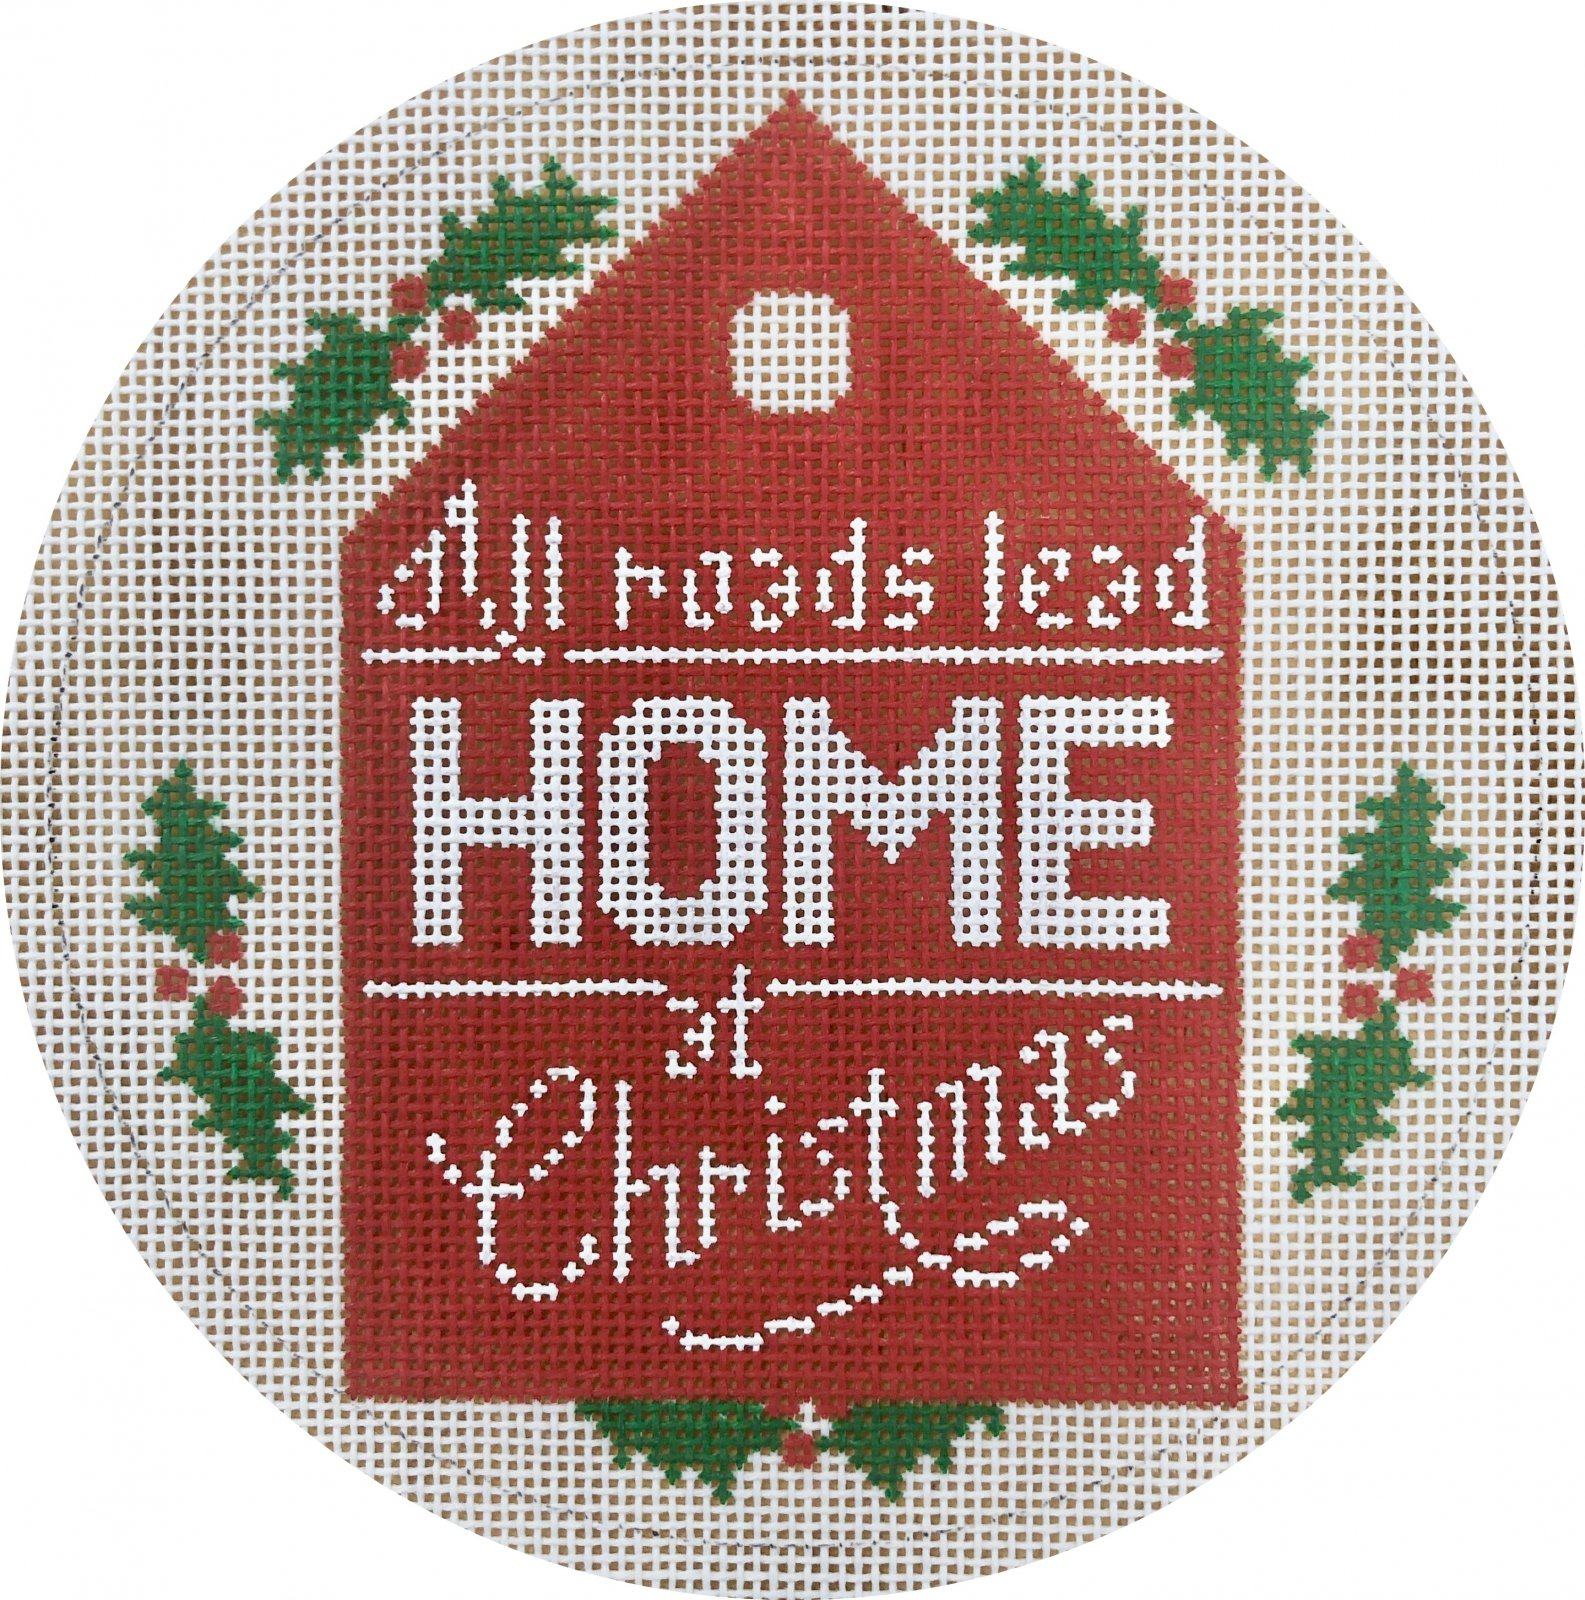 all roads lead home at Christmas